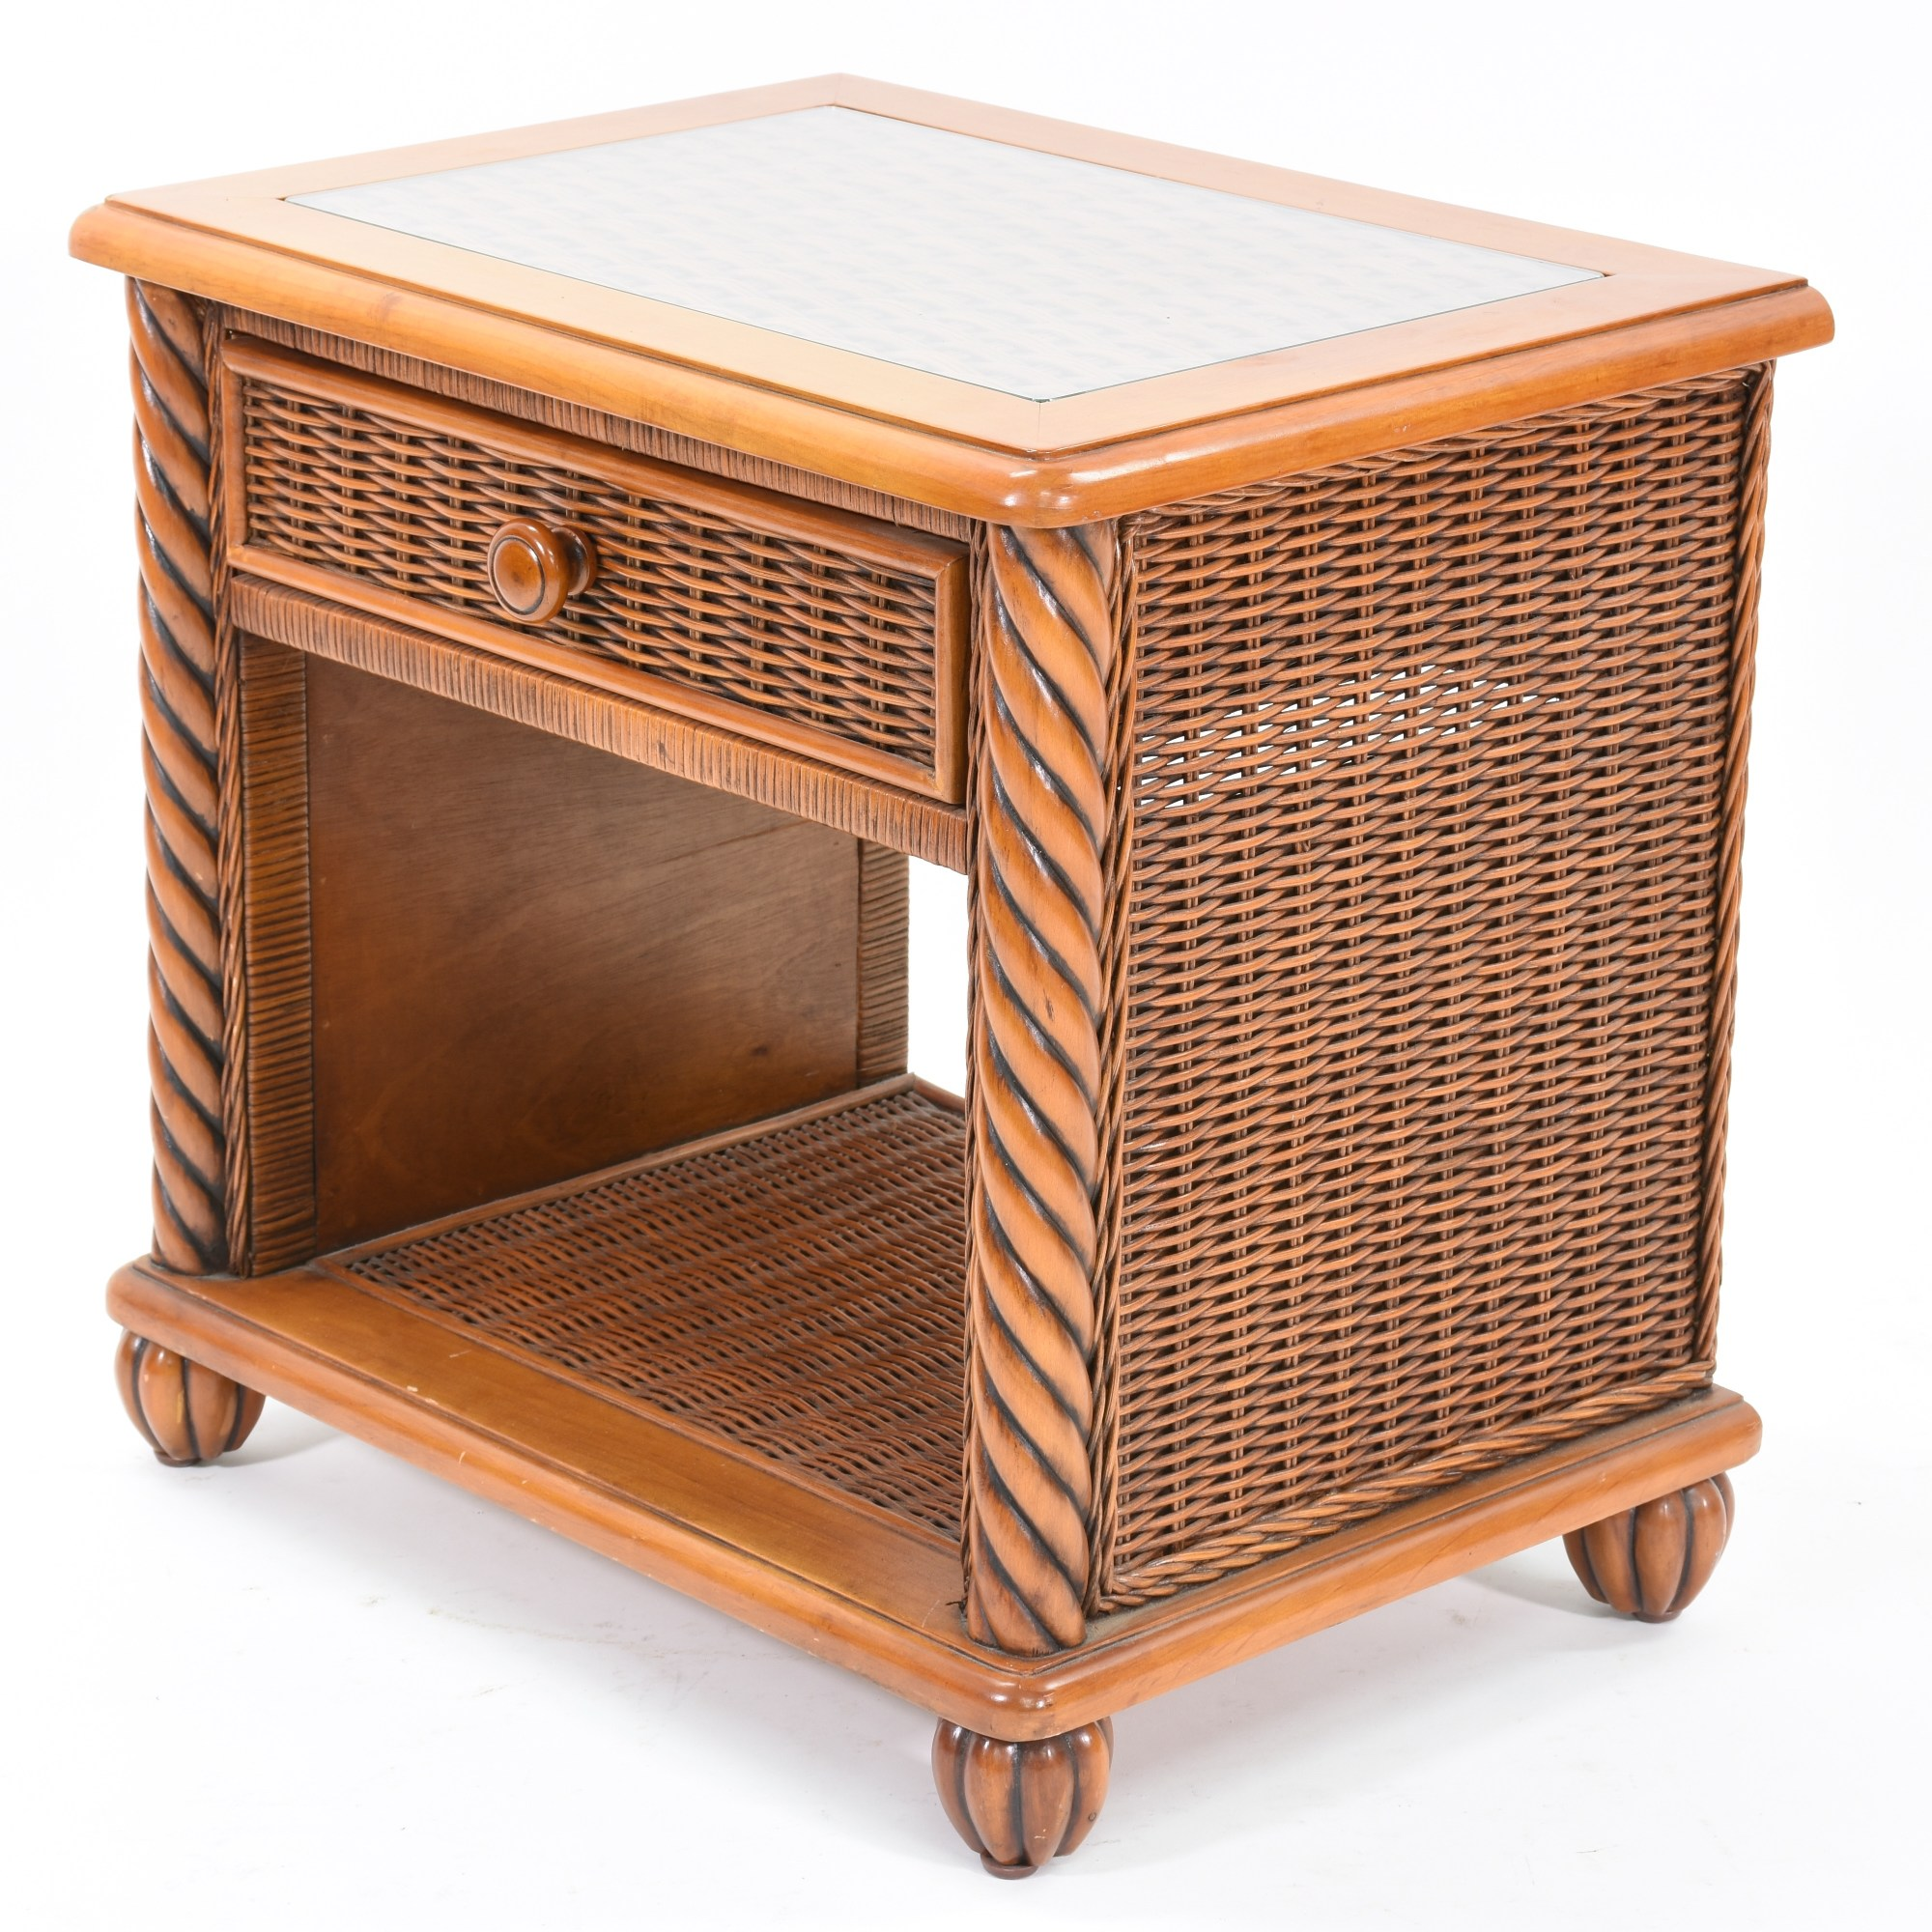 Pair Of Wicker Nightstands With Glass Top Loveseat Vintage Furniture San Diego & Los Angeles